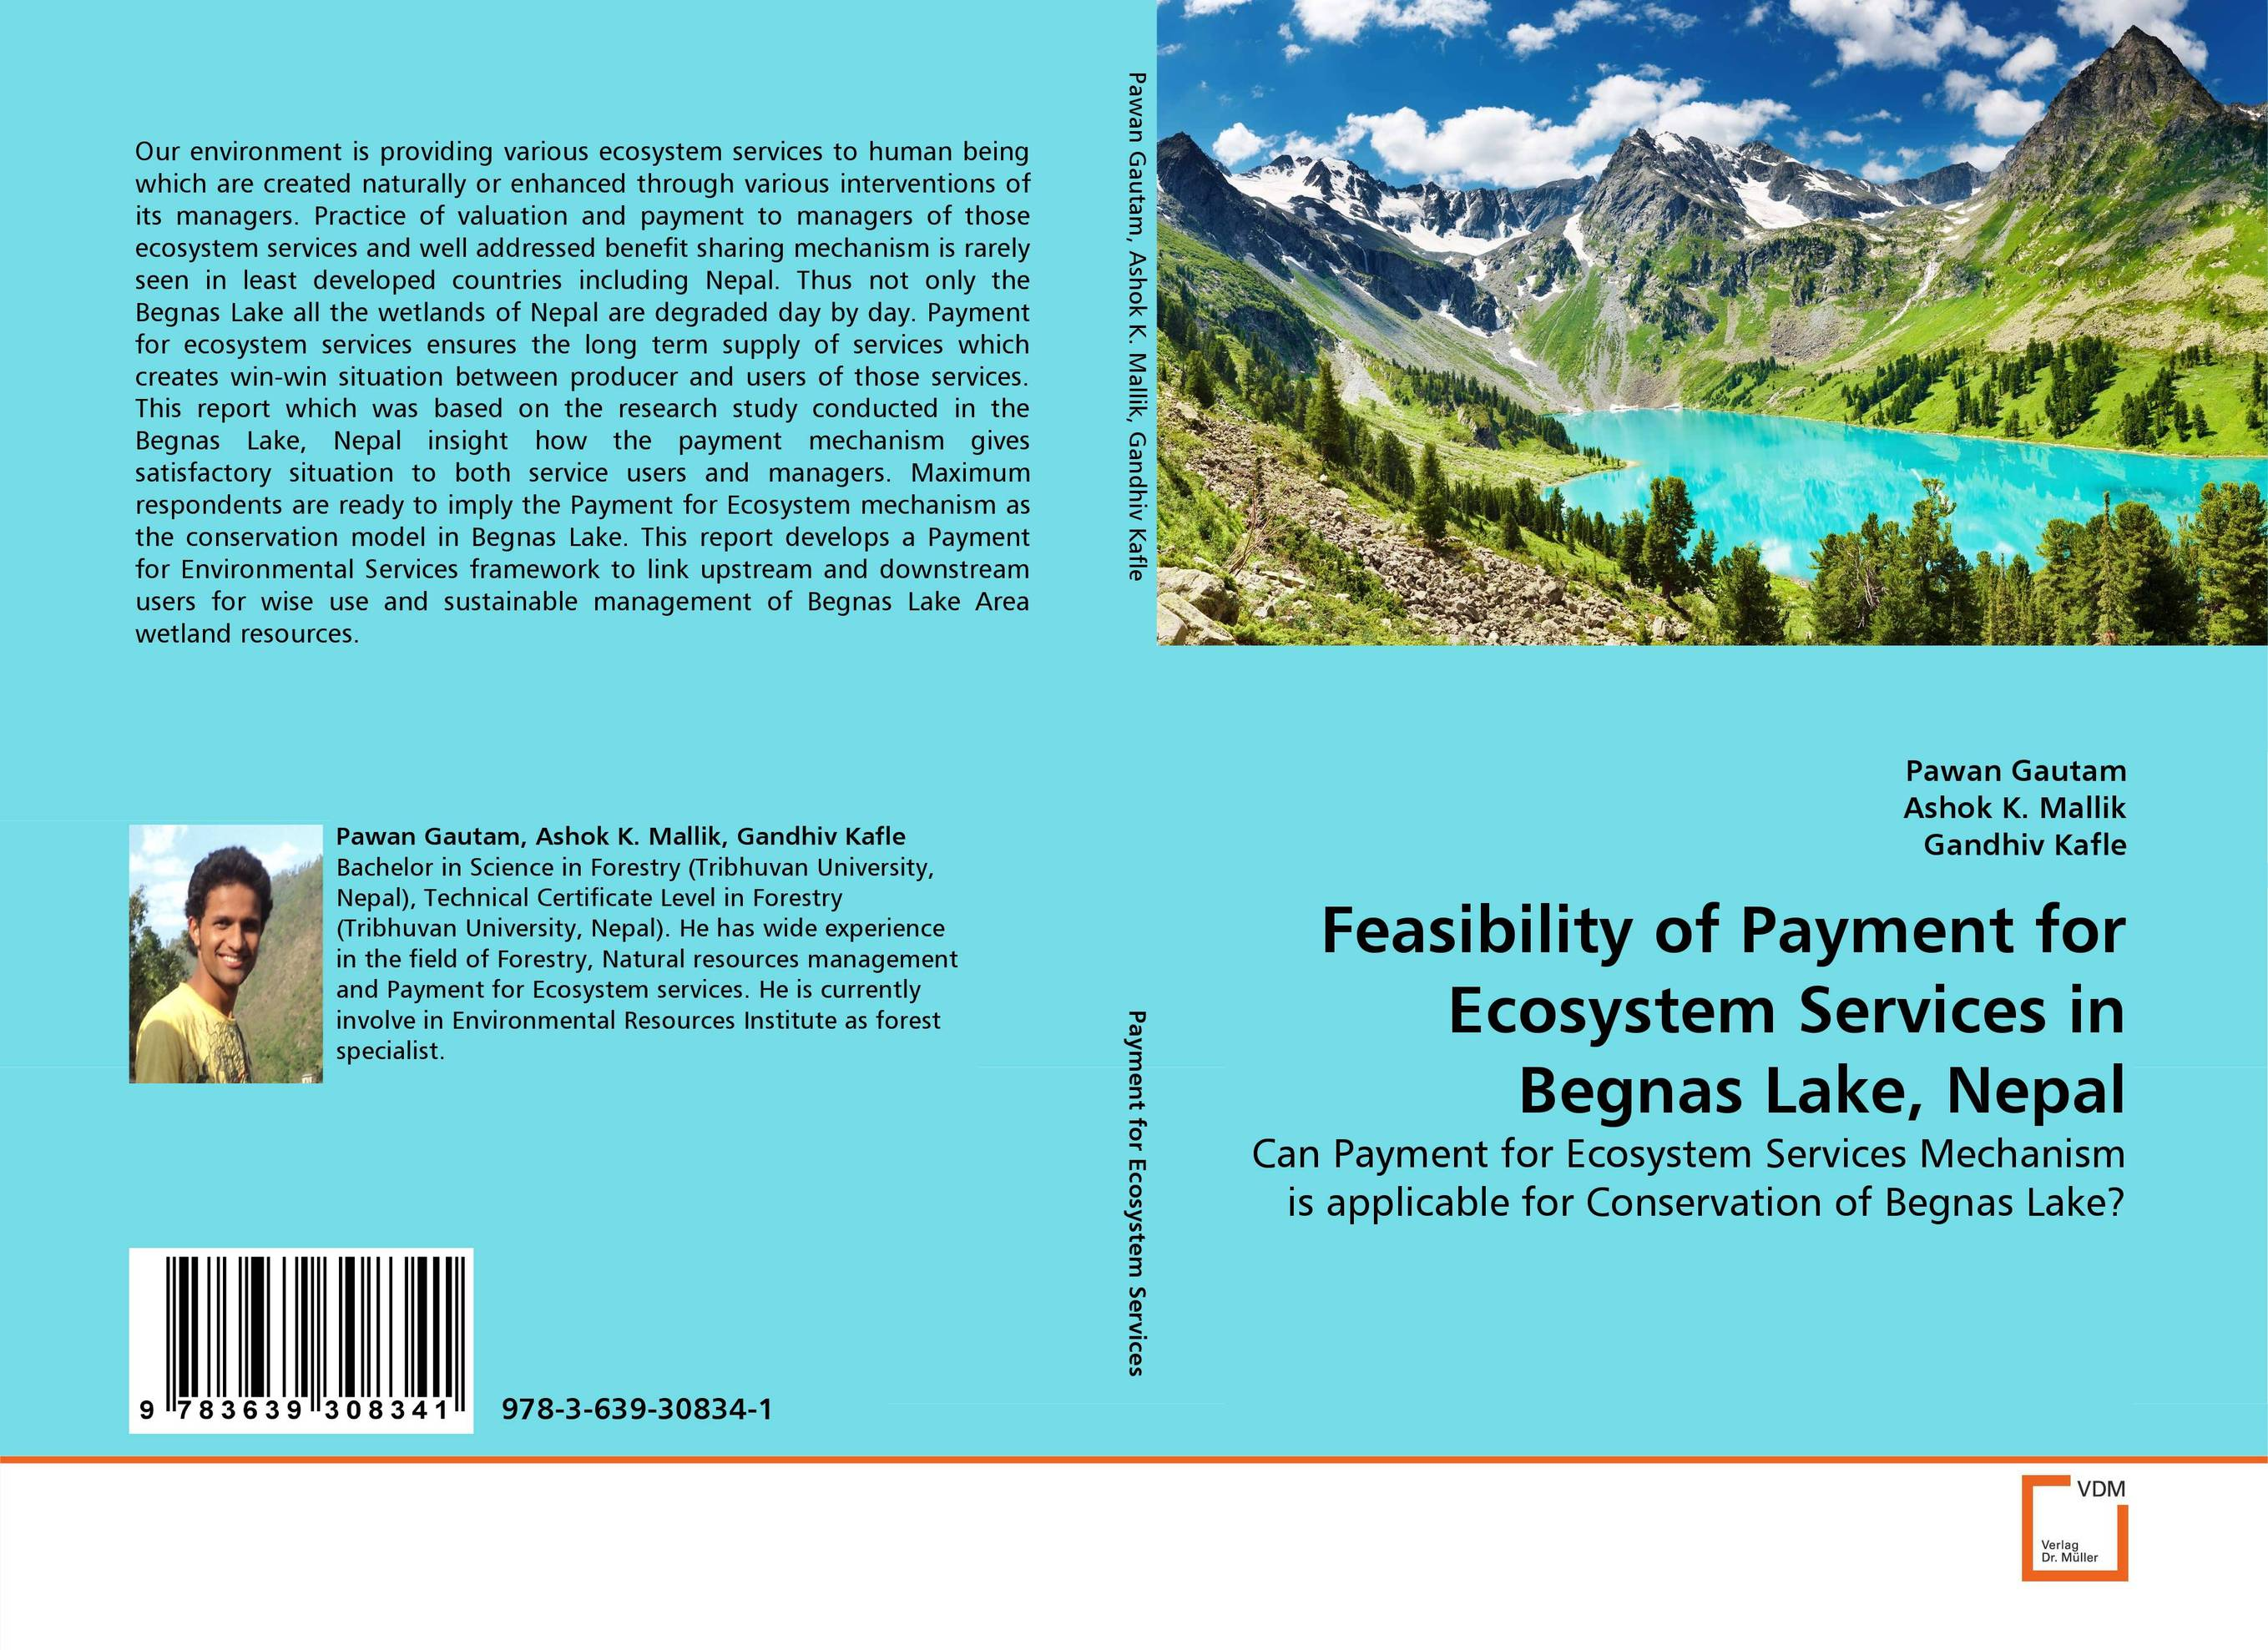 цена на Feasibility of Payment for Ecosystem Services in Begnas Lake, Nepal